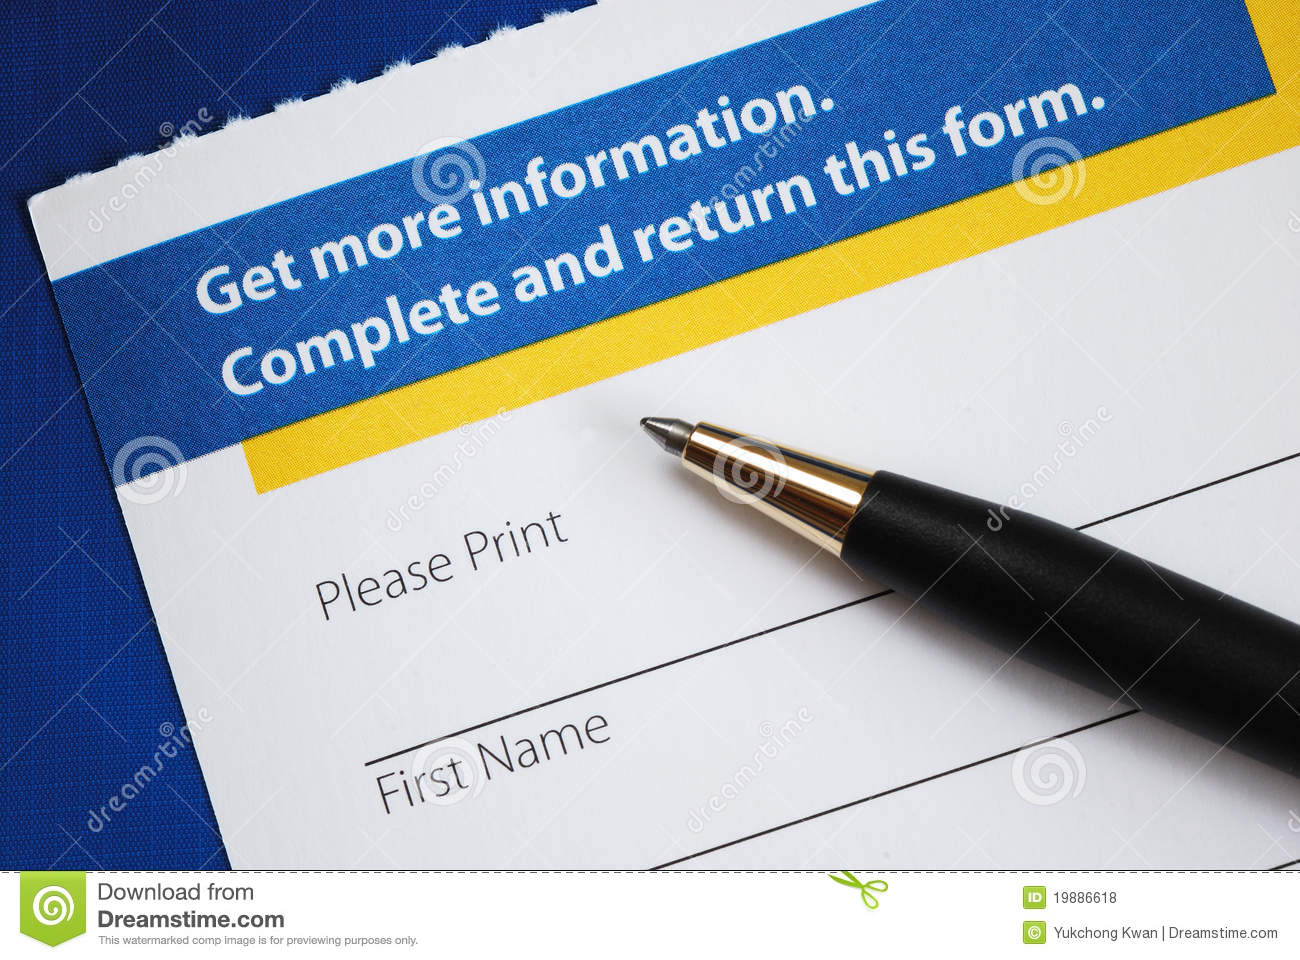 Enter the form to request more information